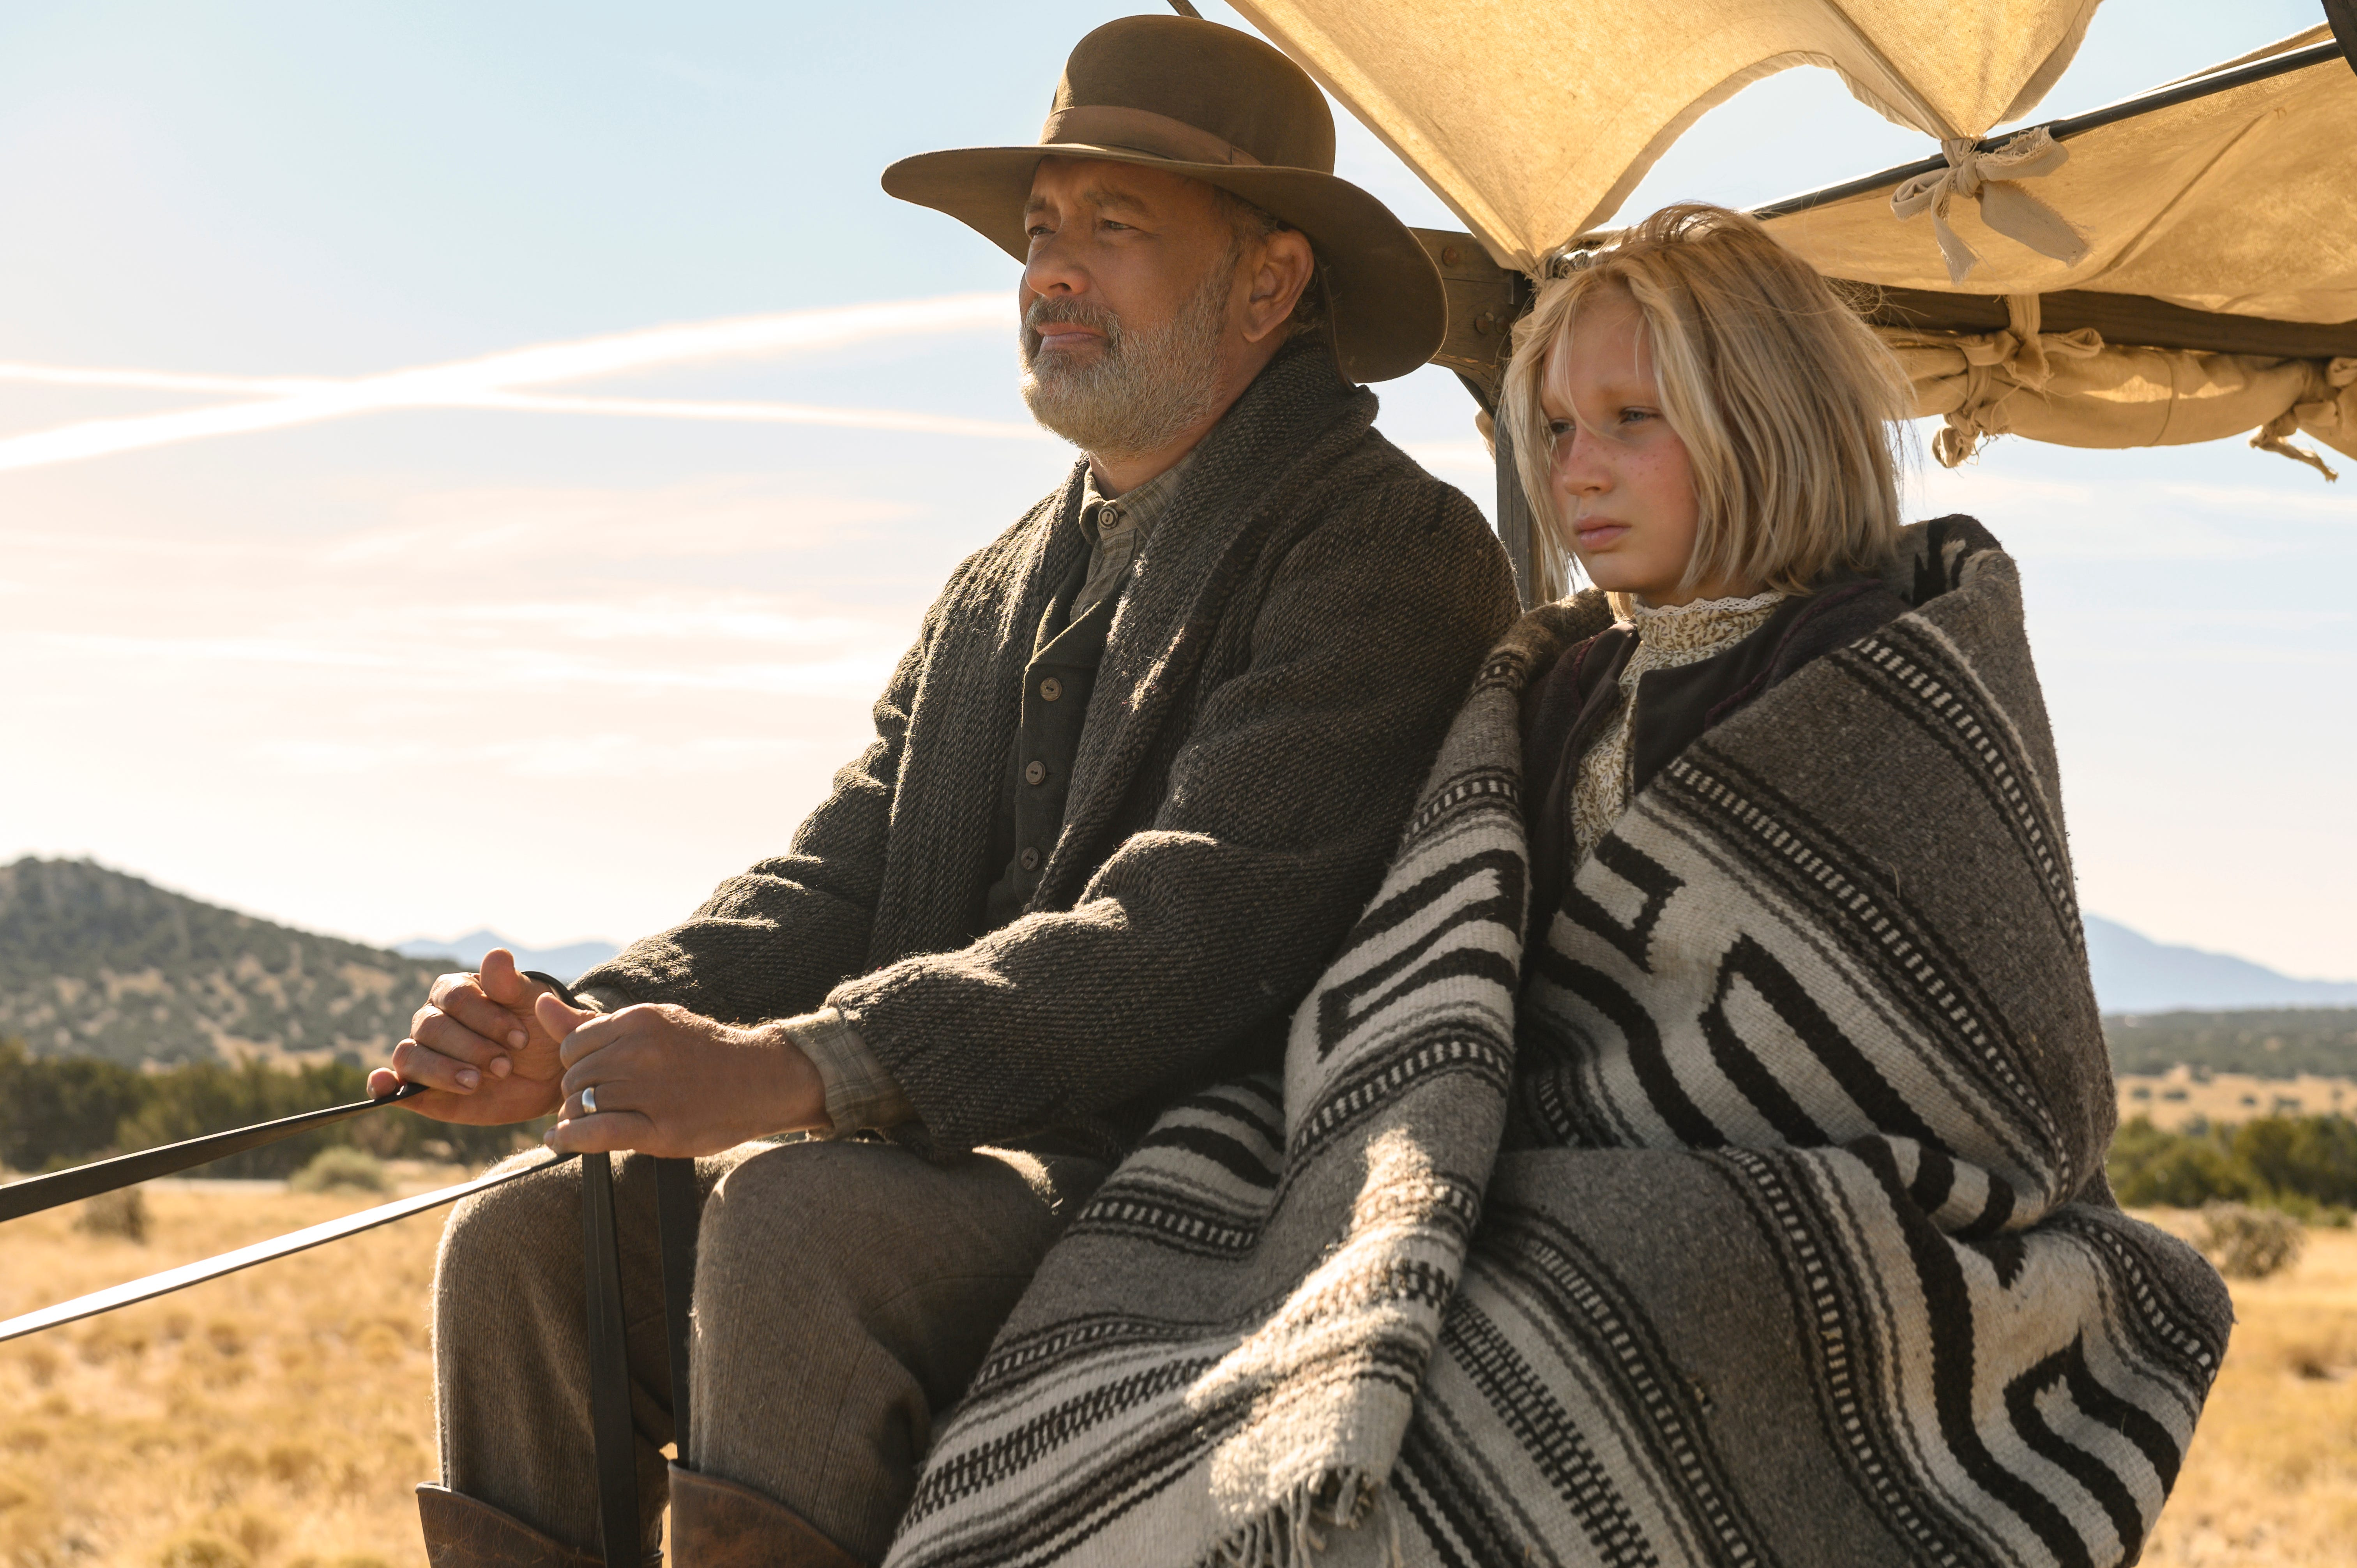 Review: In throwback role, Tom Hanks helps steady wobbly Western  News of the World